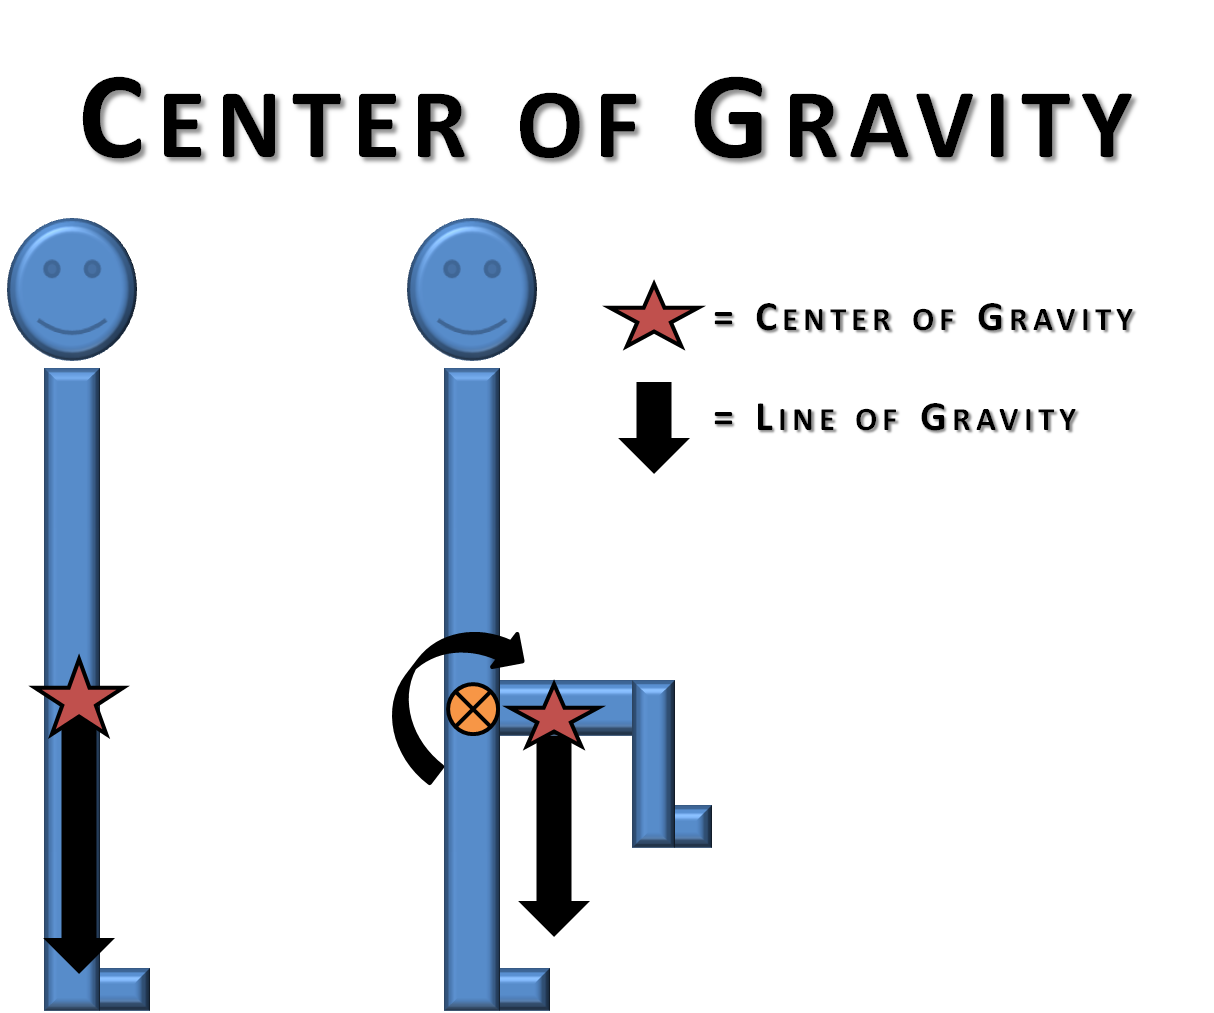 Basic Biomechanics: Gravity